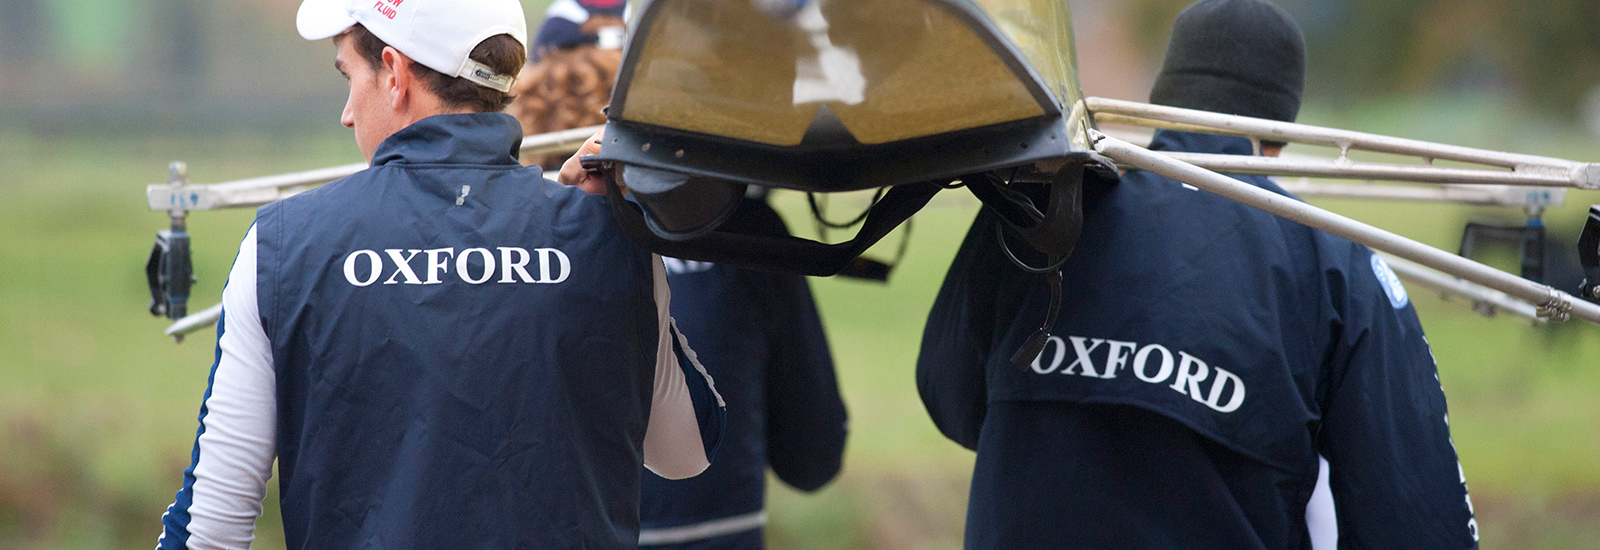 Oxford men power to Boat Race victory as women miss out